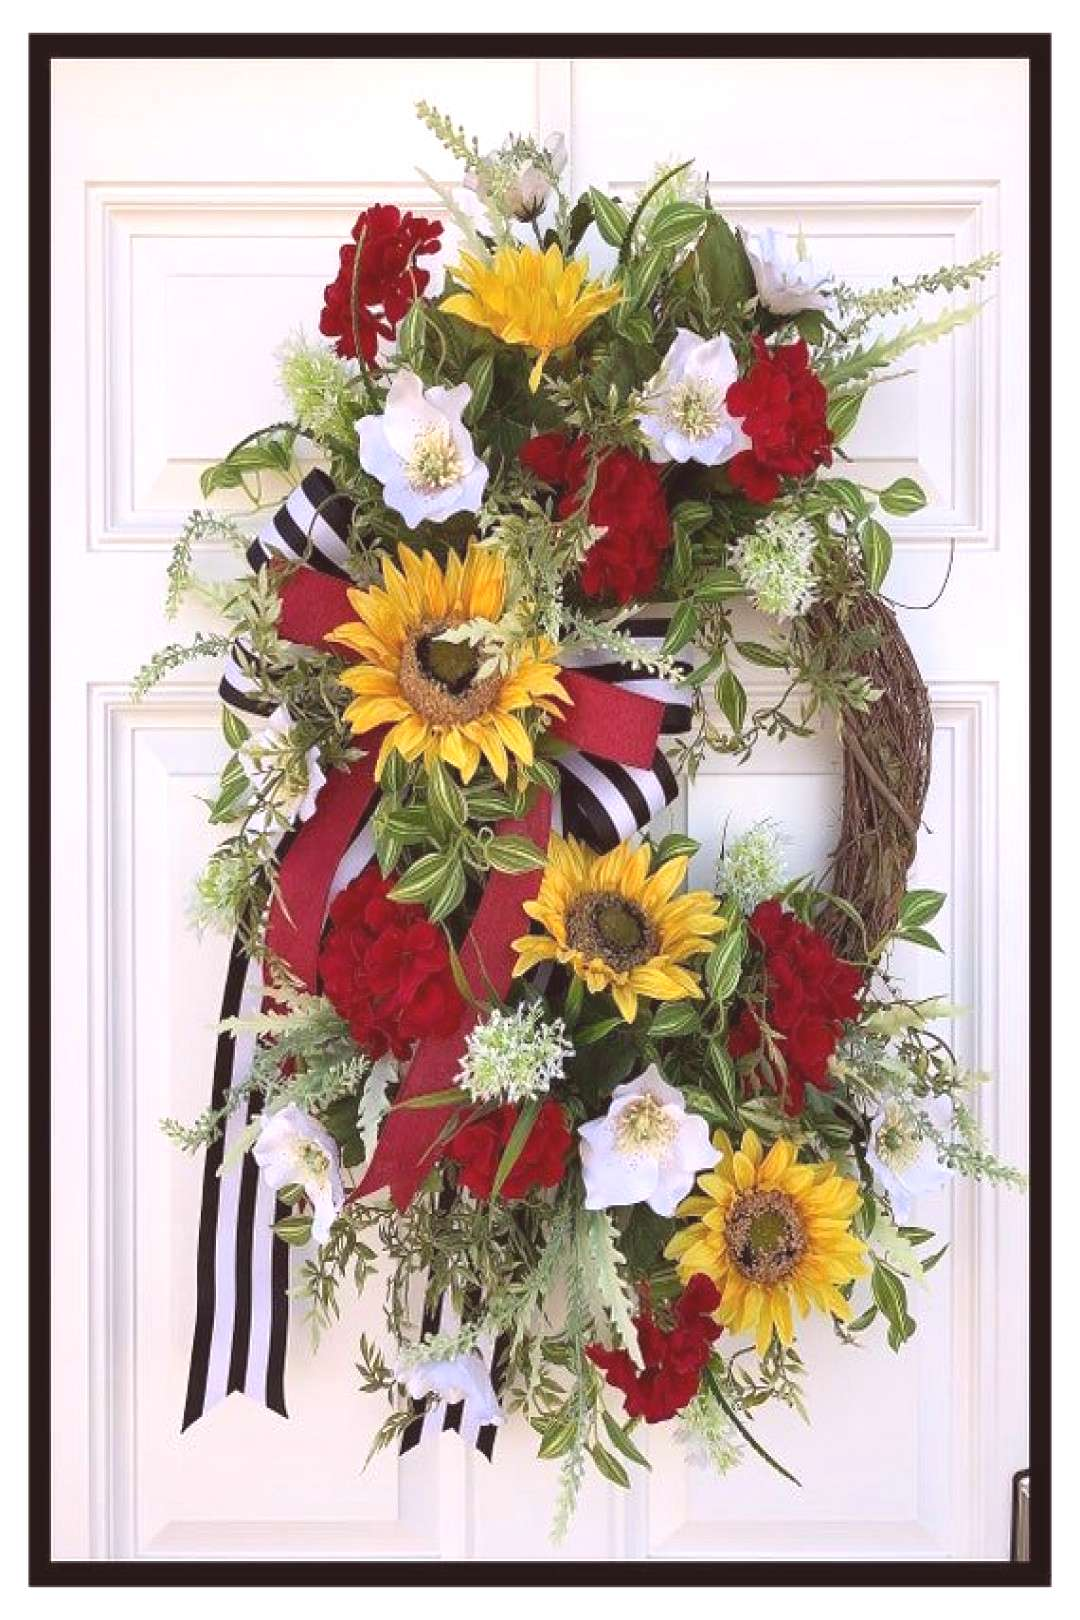 Summer Wreaths For Front Door Wreath, Yellow Sunflower Wreath, Red Geranium Wreath, Summer Door Wre